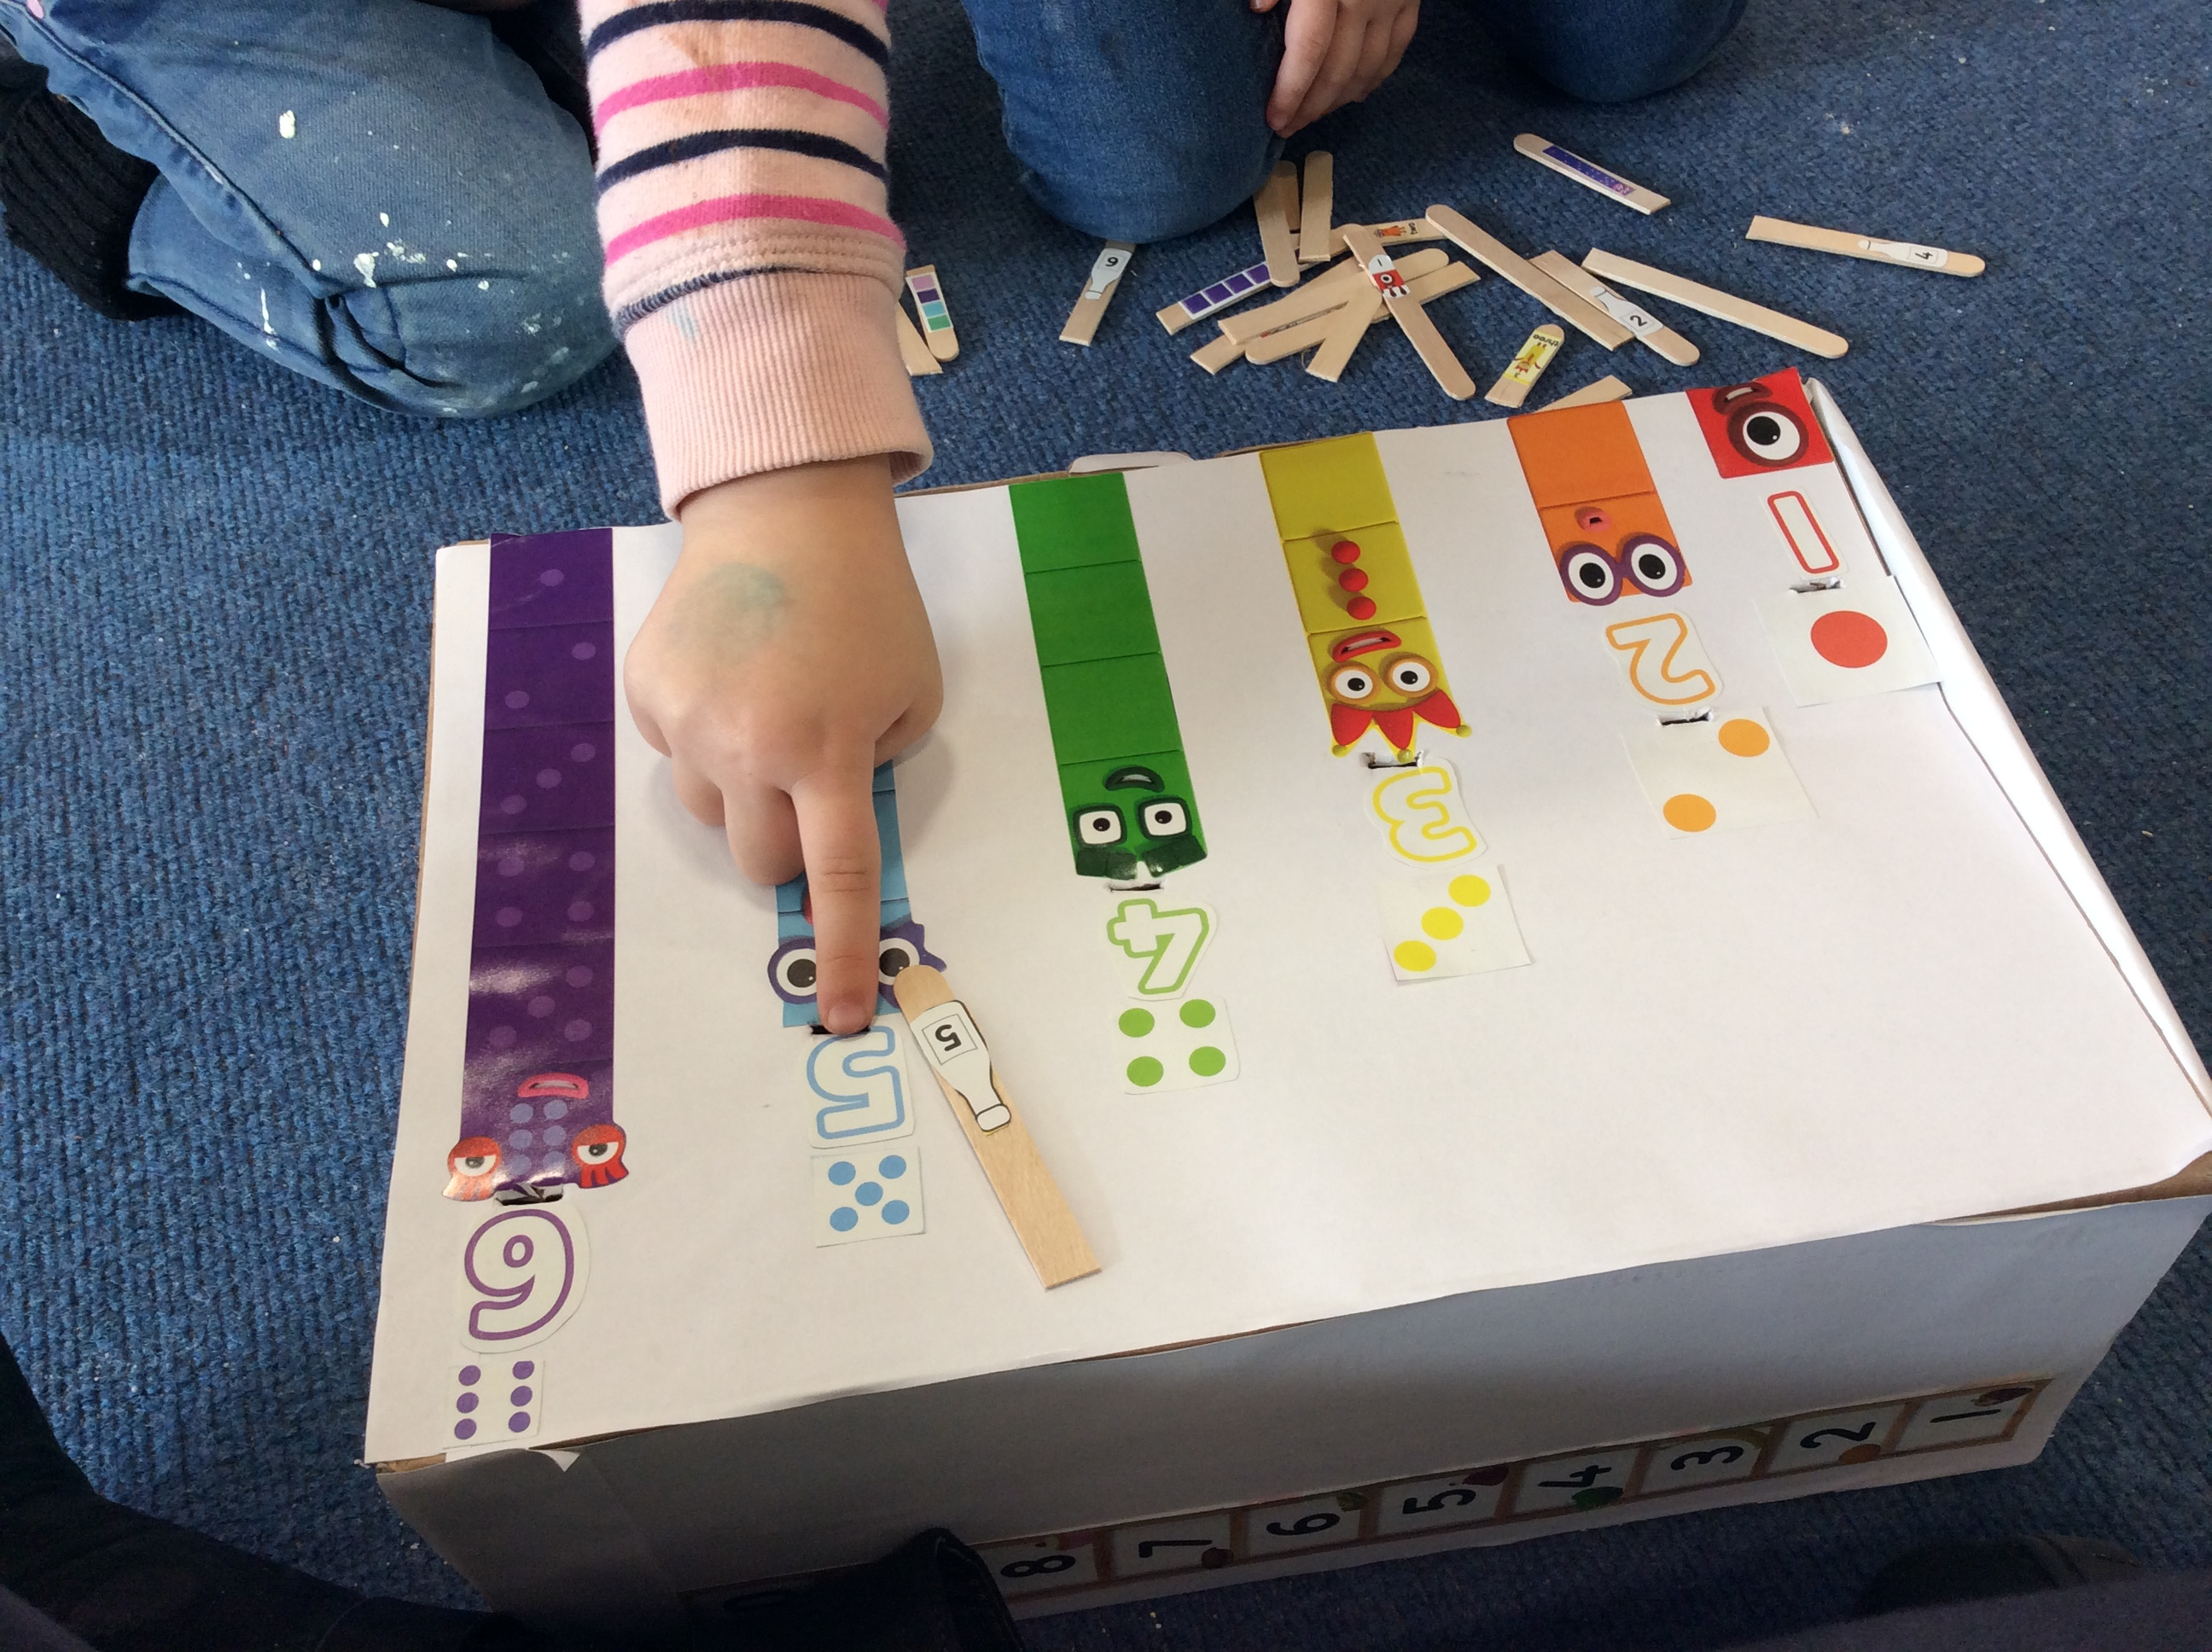 Fun with Number Blocks